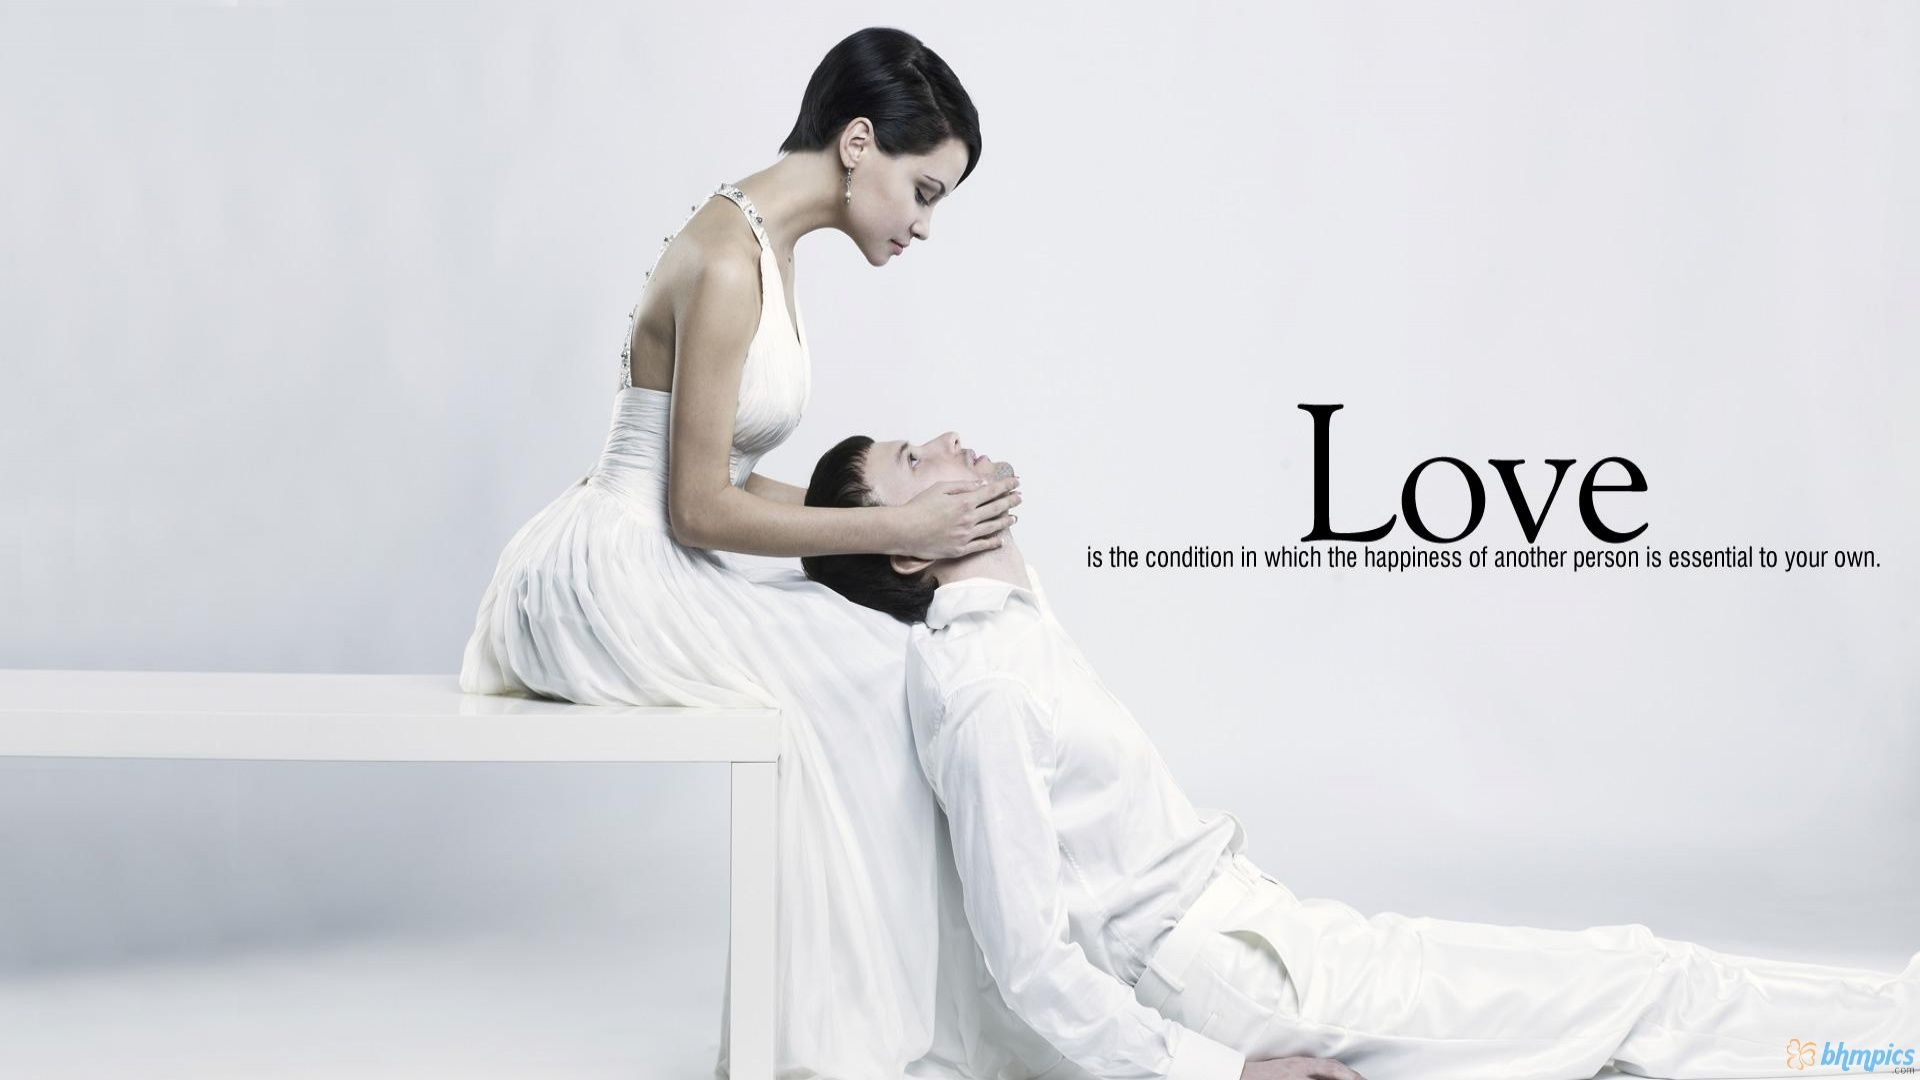 Couple in Love Quotes Background HD Wallpaper